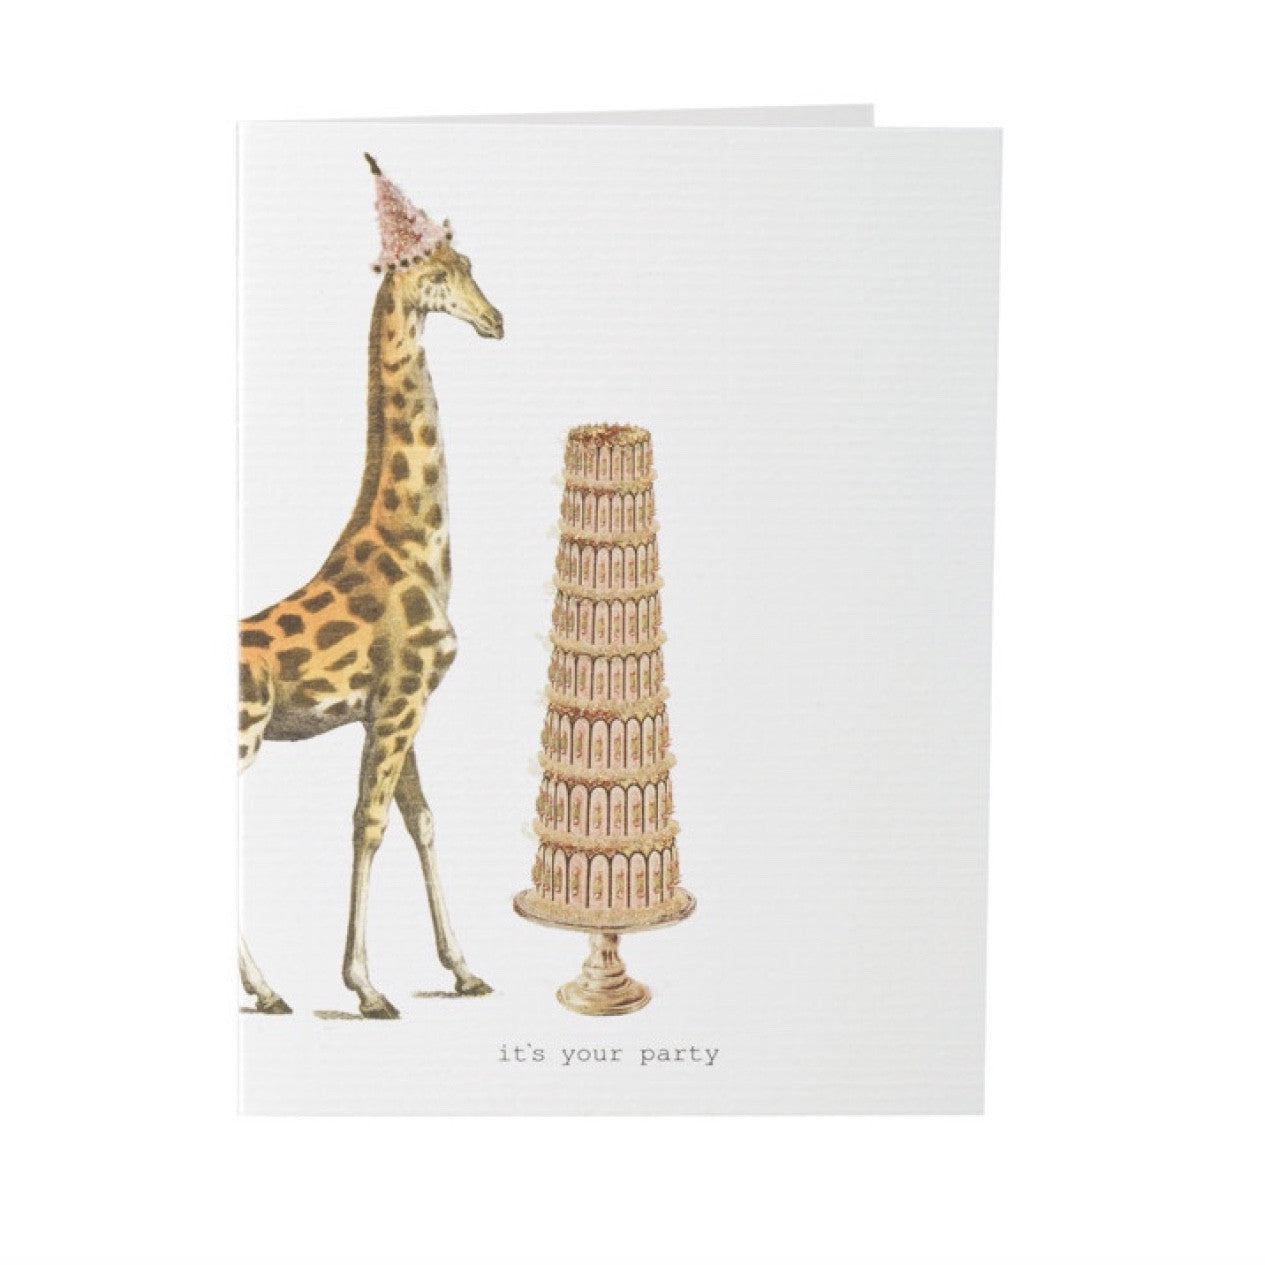 "Tokyo Milk ""It's your party"" Giraffe and Cake Card, TM-Tokyo Milk, Putti Fine Furnishings"